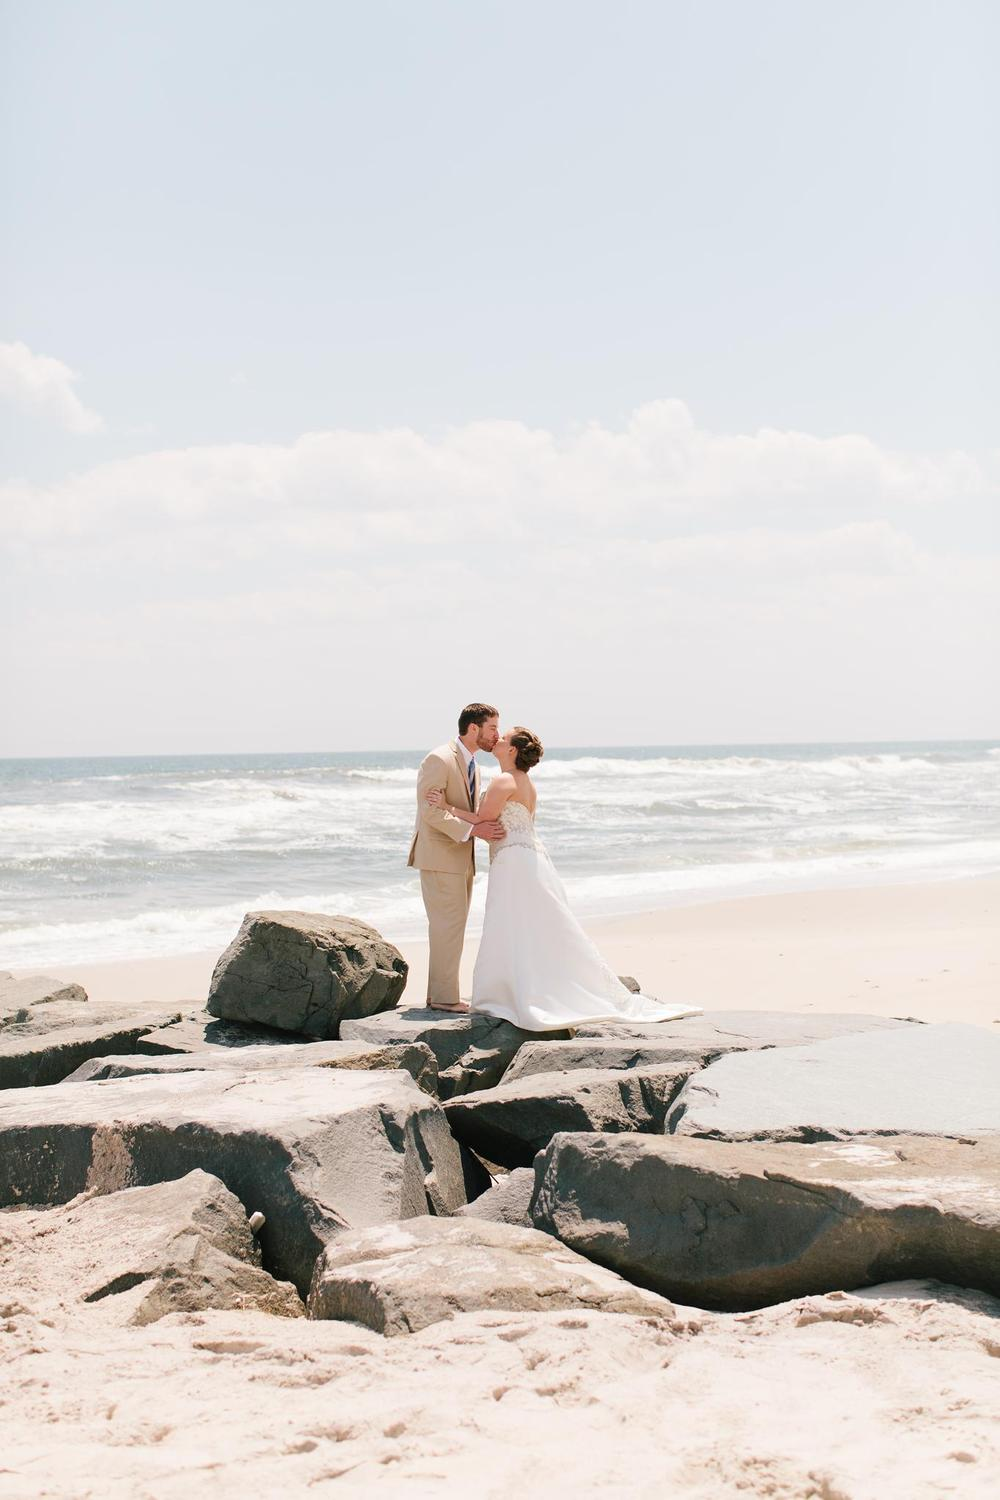 brant_beach_yacht_club_wedding_long_beach_island_nj_wedding_photographer_87.jpg